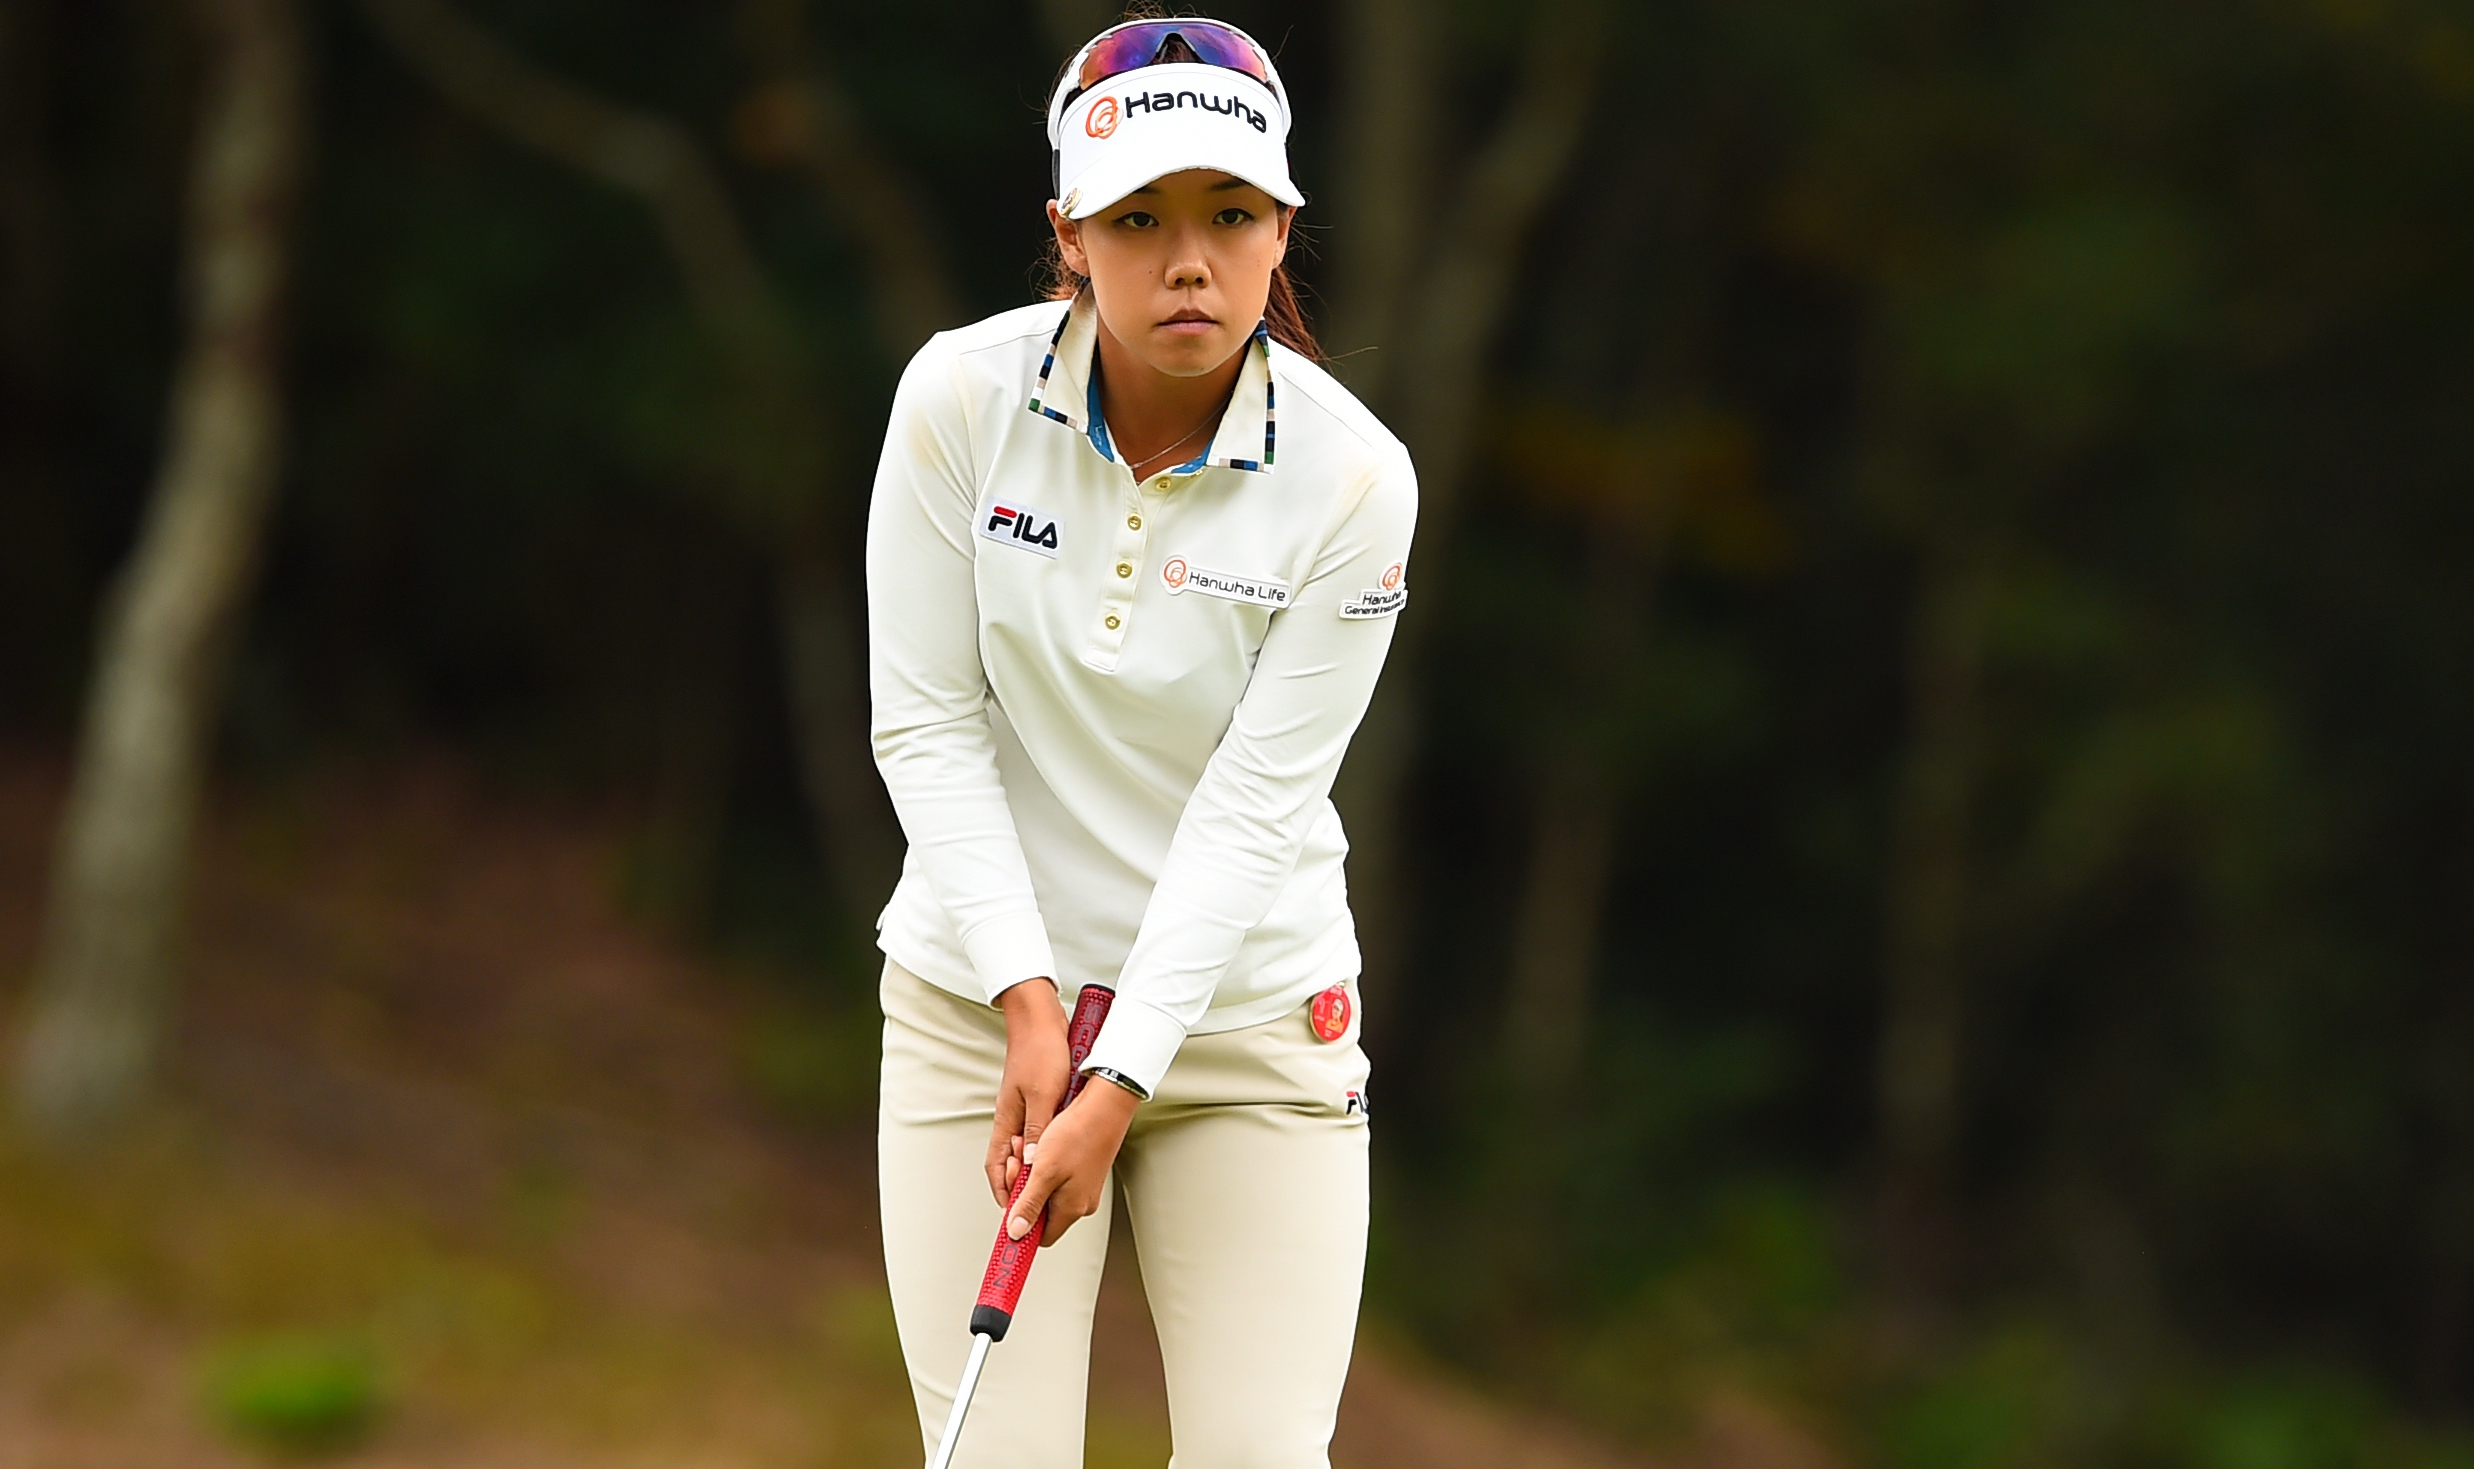 Jenny Shin takes lead in LPGA Tour's Toto Japan Classic - Golf Canada